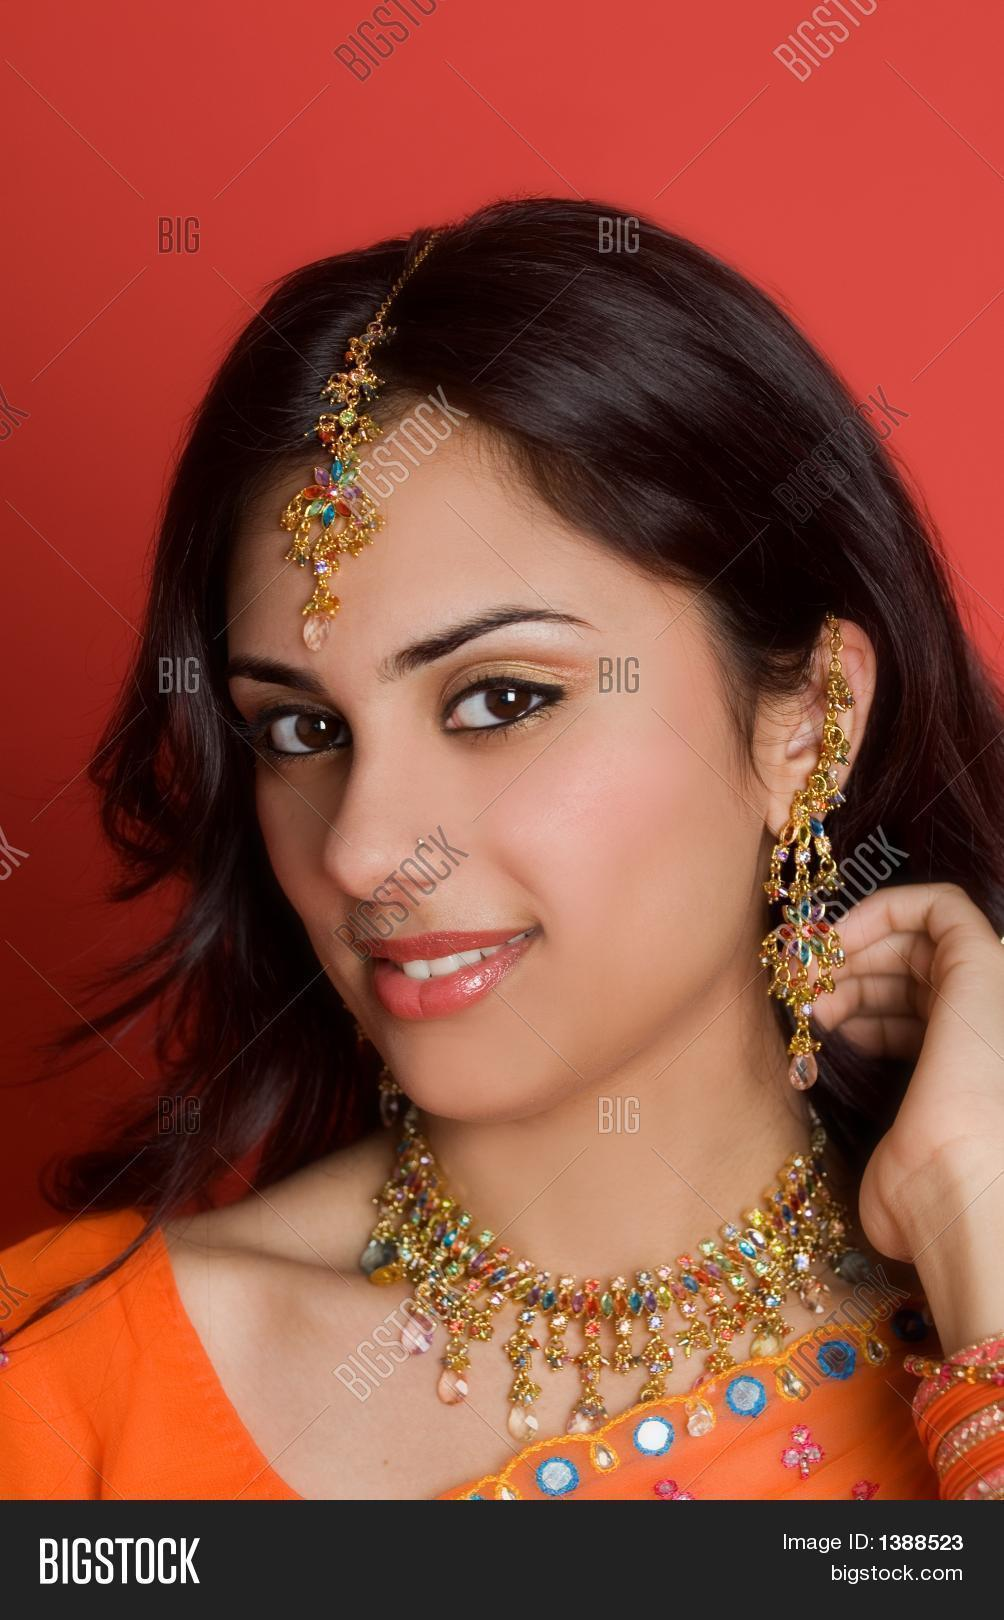 hessel hindu single women Cedarville's best 100% free hindu dating site meet thousands of single hindus in cedarville with mingle2's free hindu personal ads and chat rooms our network of hindu men and women in cedarville is the perfect place to make hindu friends or find a hindu boyfriend or girlfriend in cedarville.